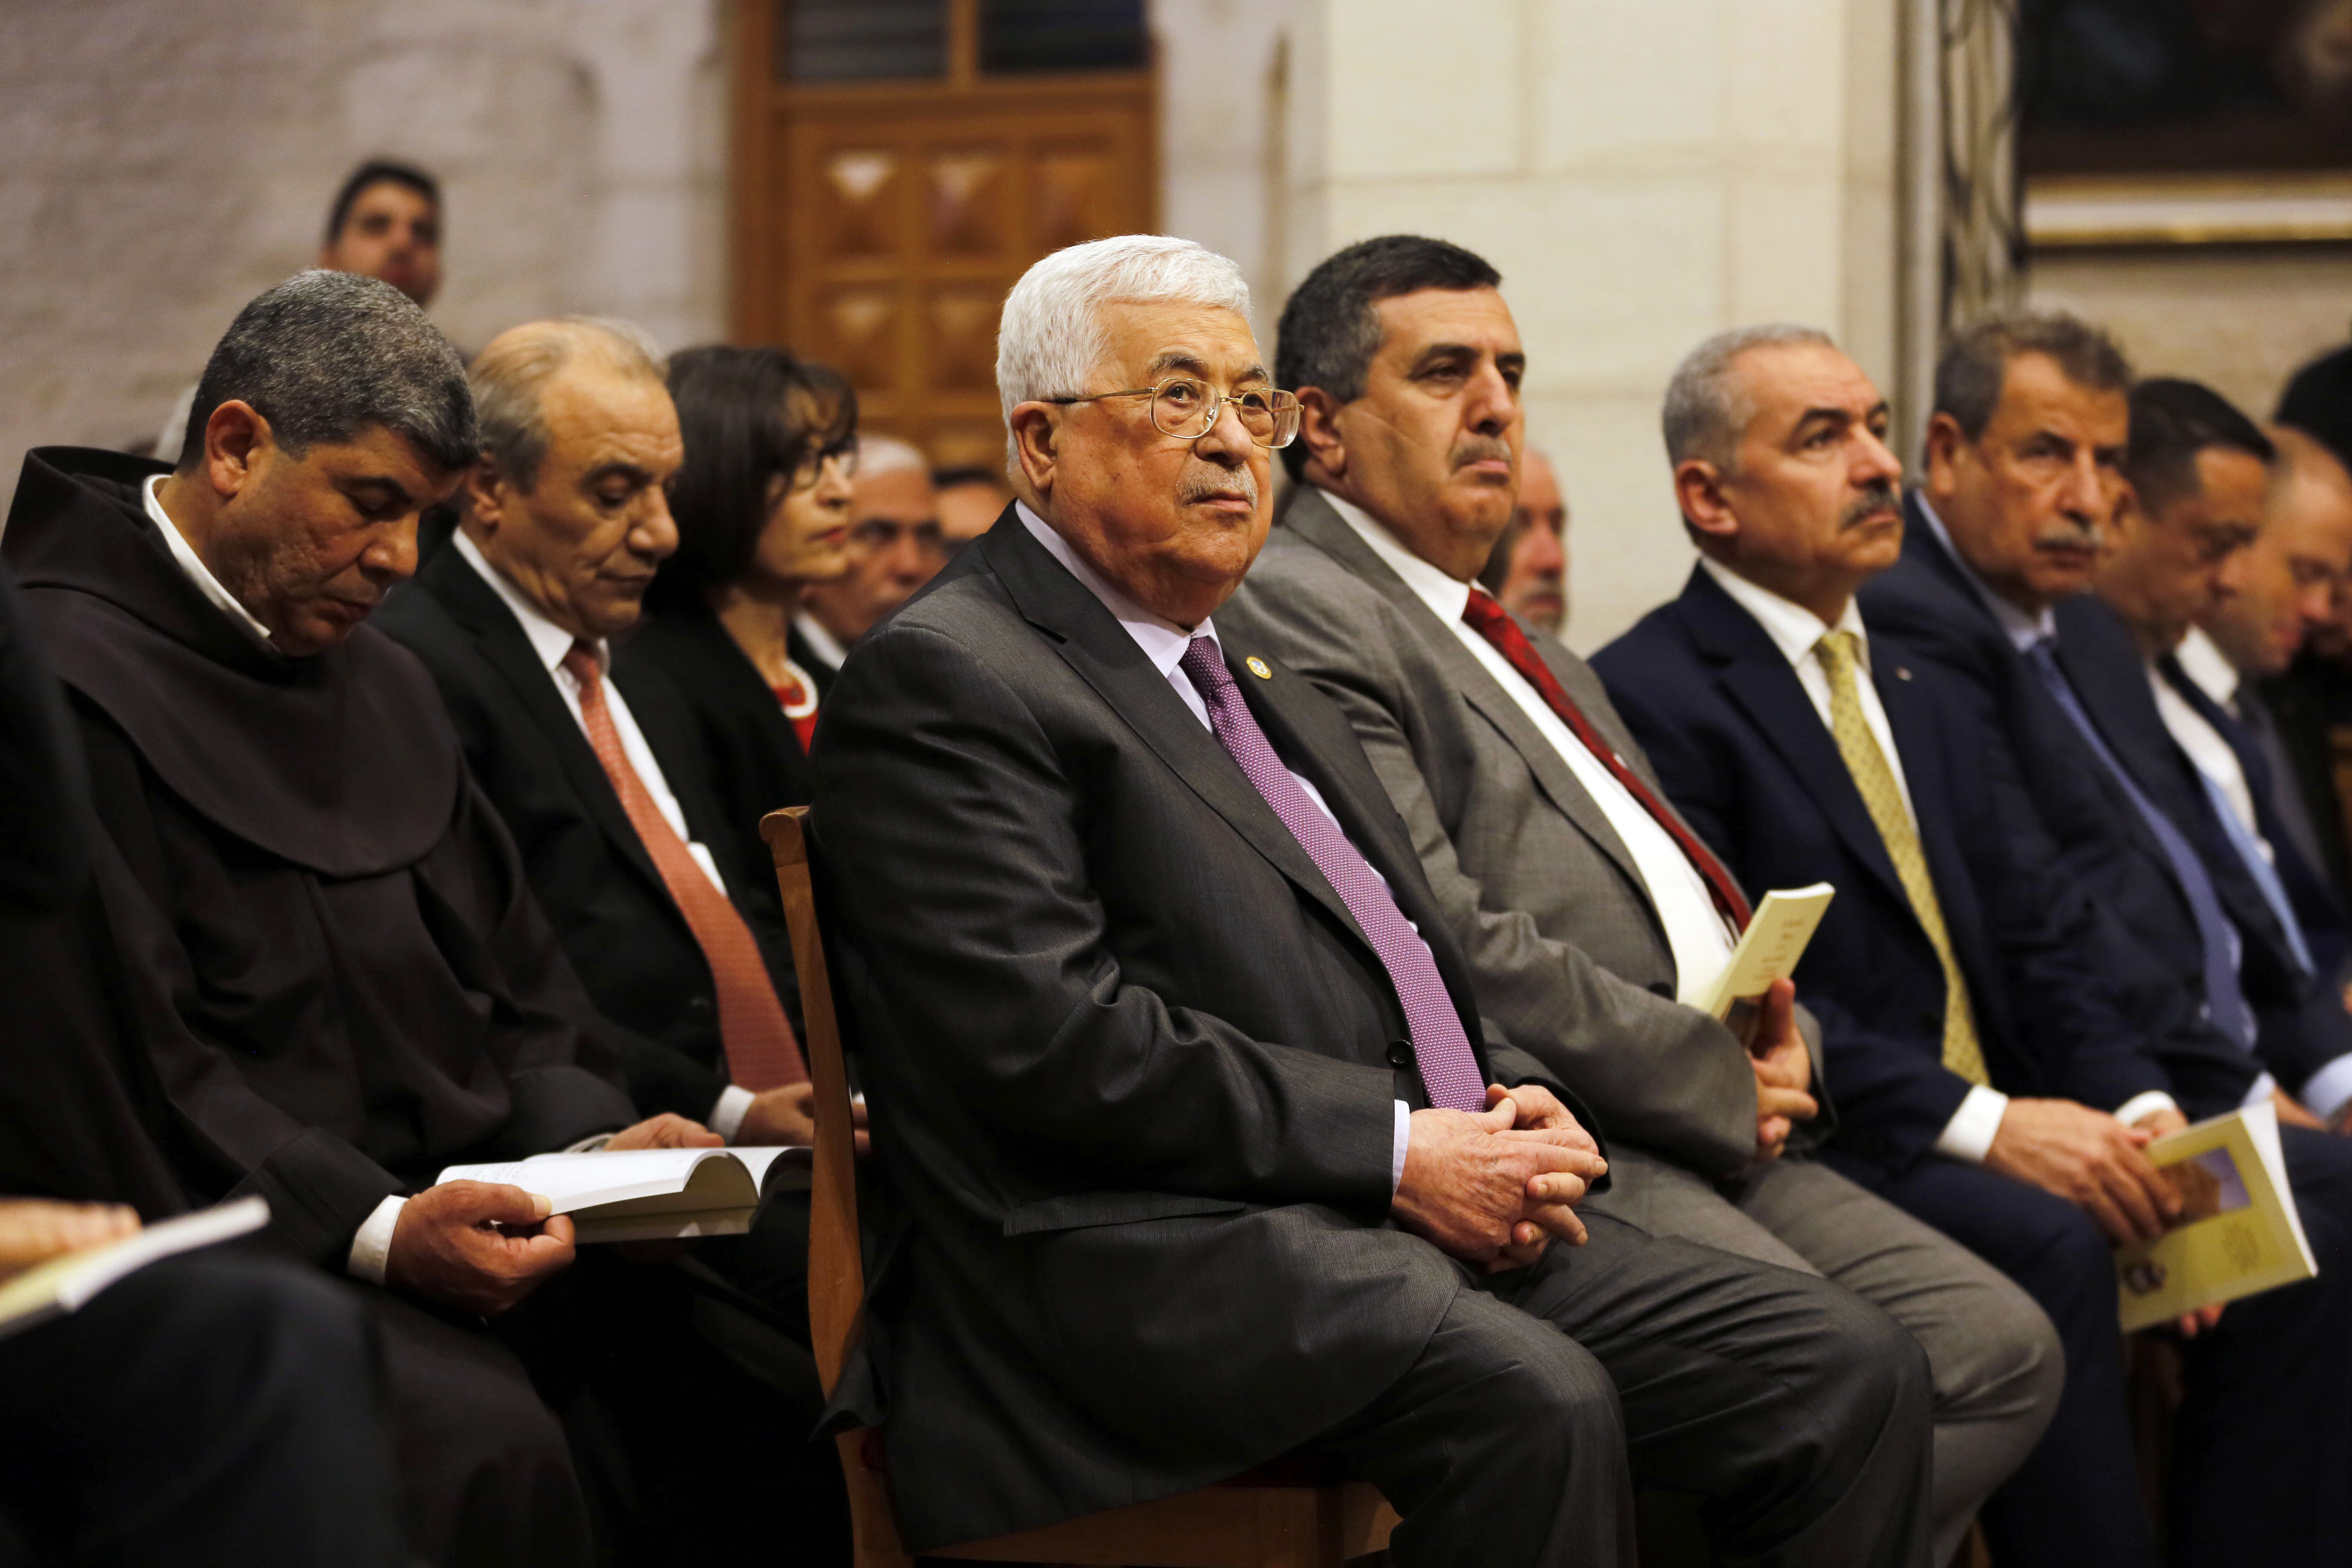 Palestinian President Mahmoud Abbas attends a Christmas midnight mass in the Church of the Nativity in the West Bank town of Bethlehem on Wednesday, Dec. 25, 2019. The Church of the Nativity, where Christians believe Jesus was born, hosted Palestinian dignitaries and pilgrims from around the world for the midnight Mass. (Mussa Qawasma/Pool Photo via AP)